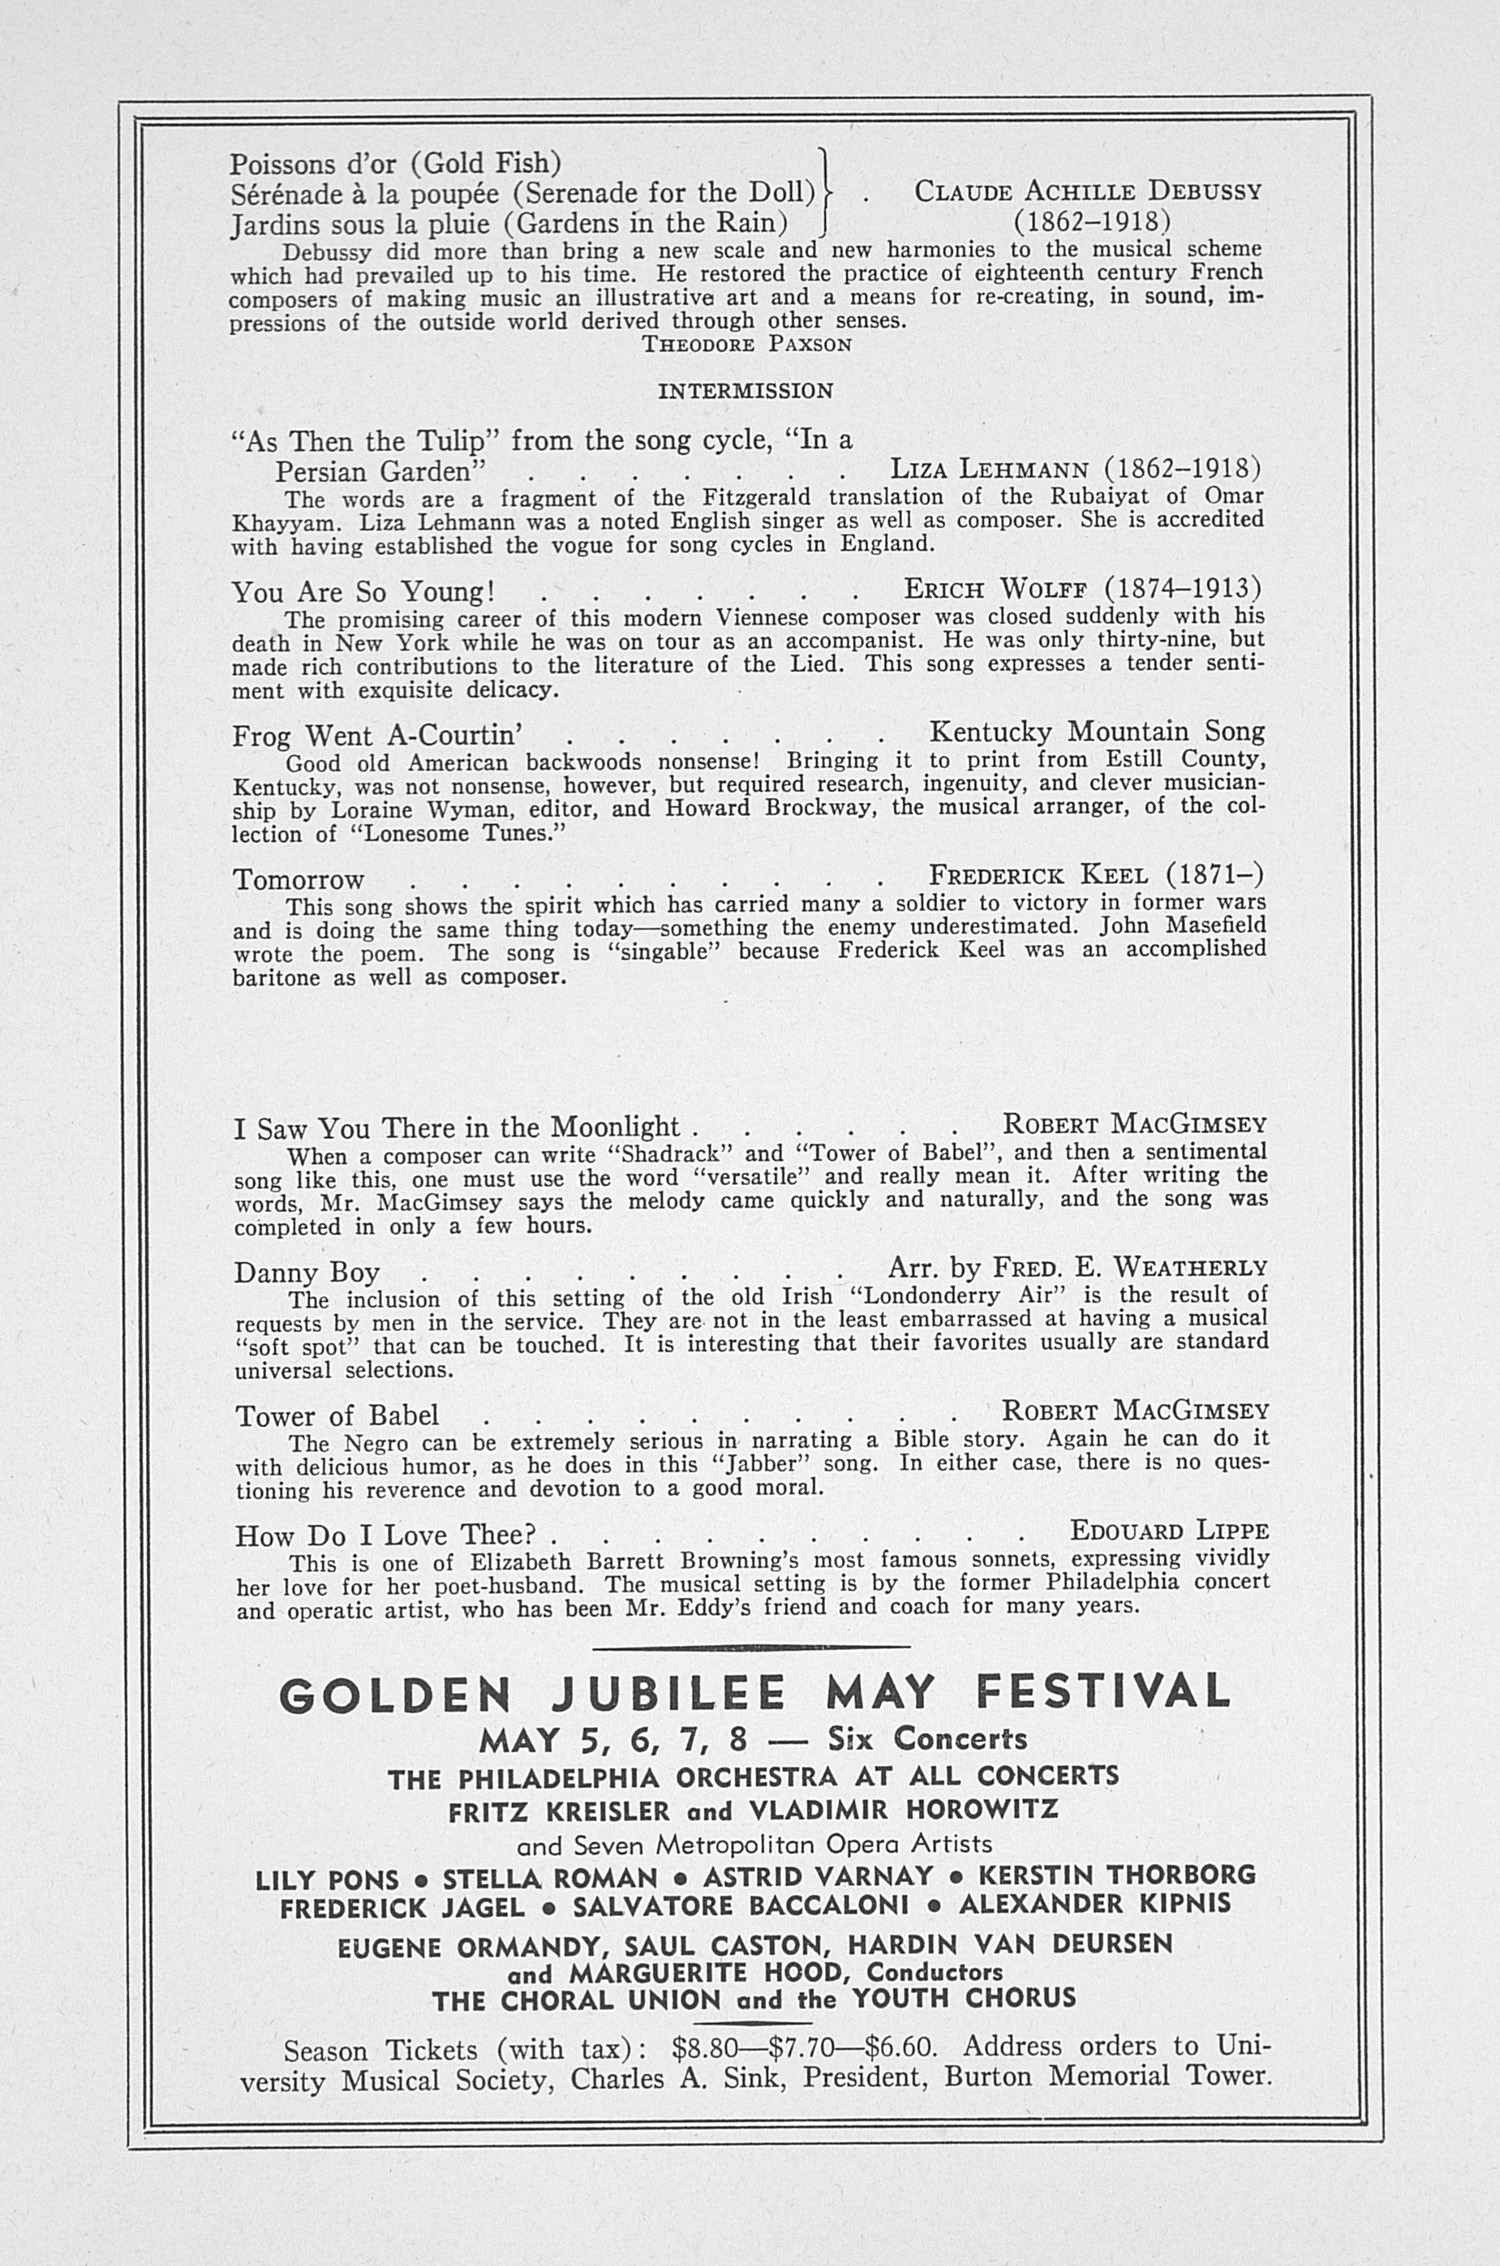 UMS Concert Program, March 17, 1943: Sixty-fourth Annual Choral Union Concert Series -- Nelson Eddy image